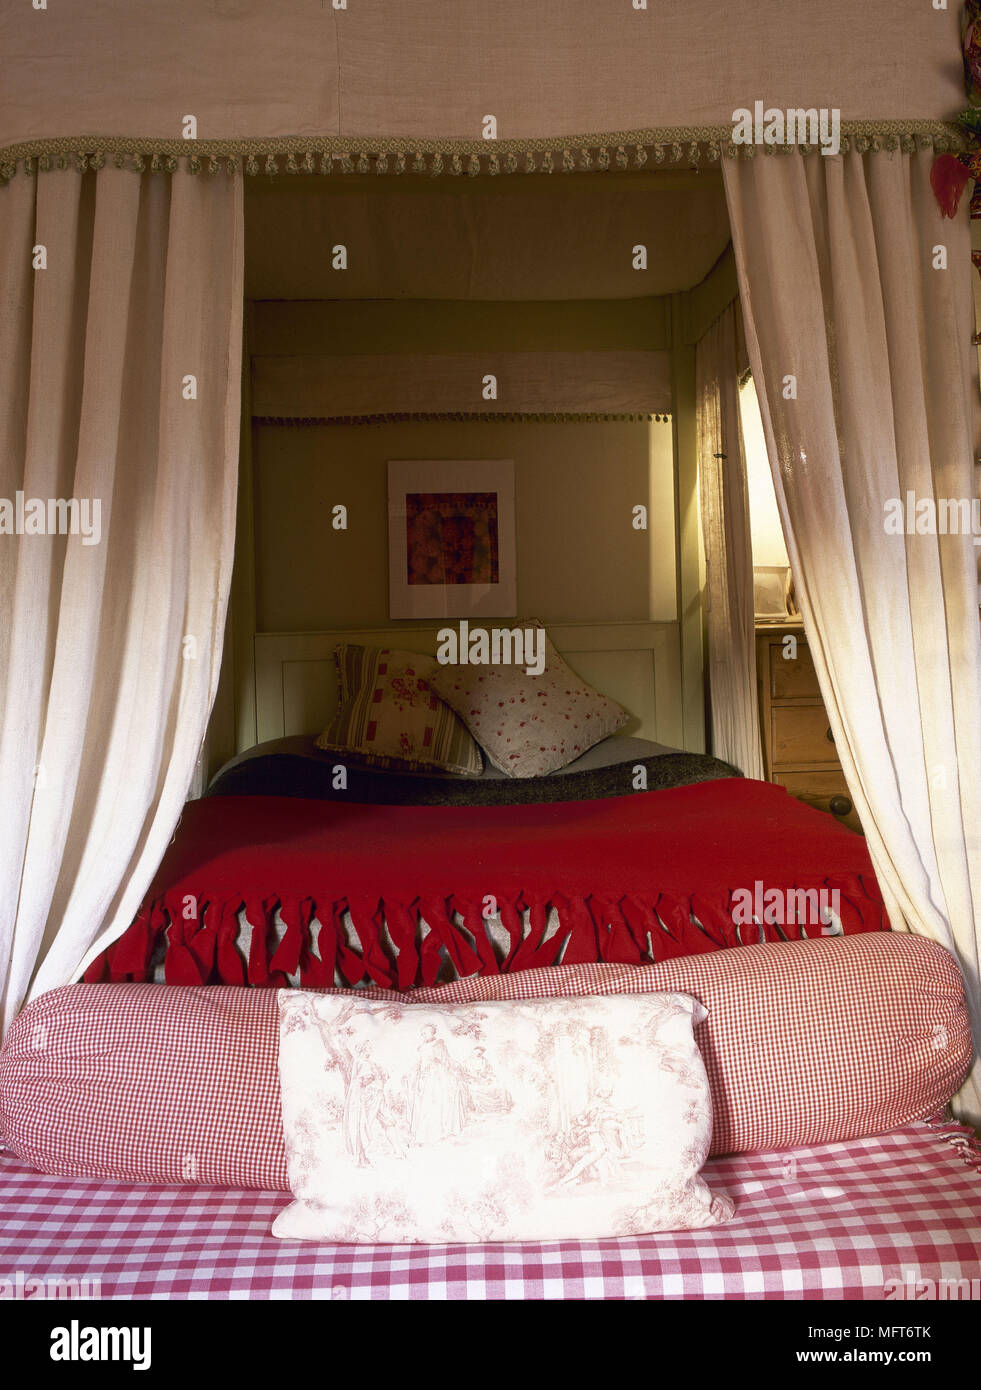 traditional bedroom detail four poster bed curtain canopy red bed cover check fabric bolster interiors bedrooms